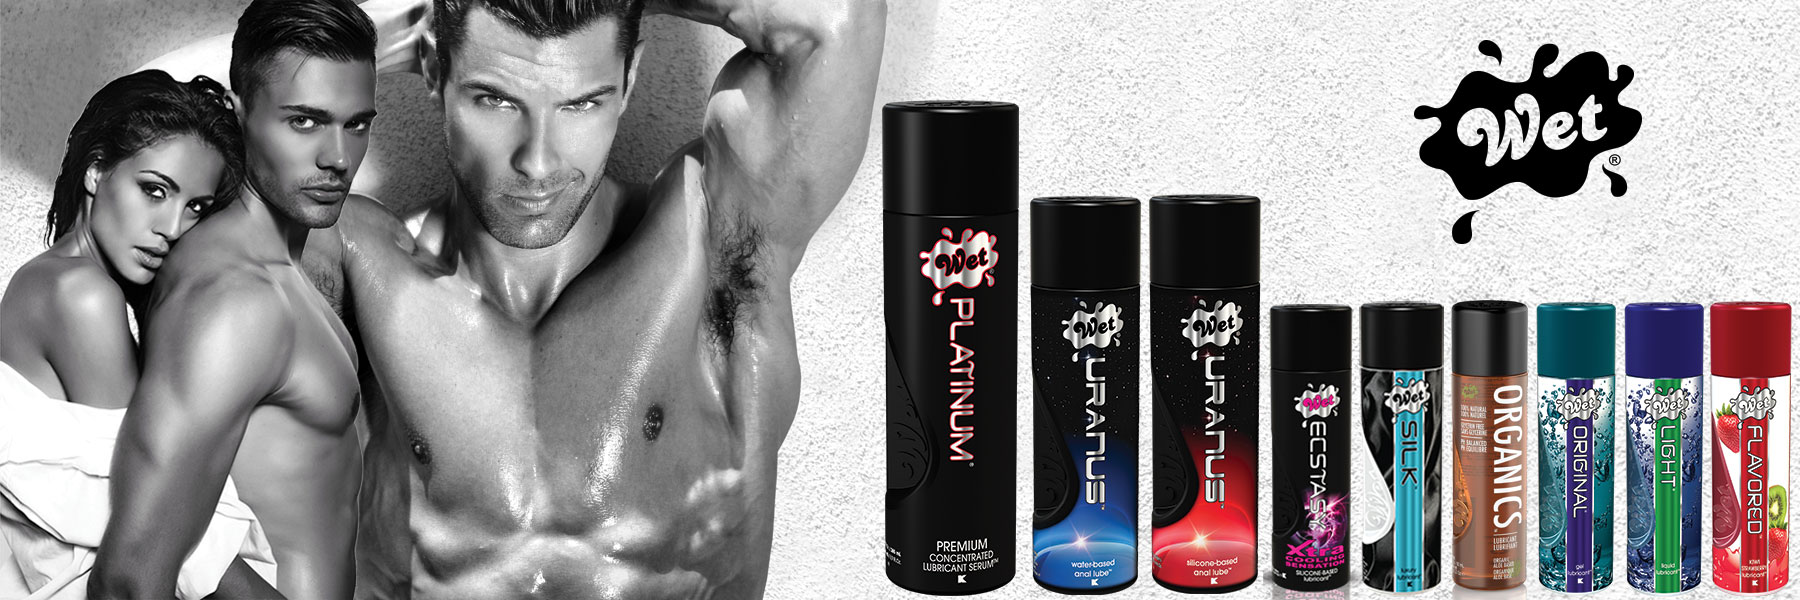 Bed Time Toys, Wet Lubricants